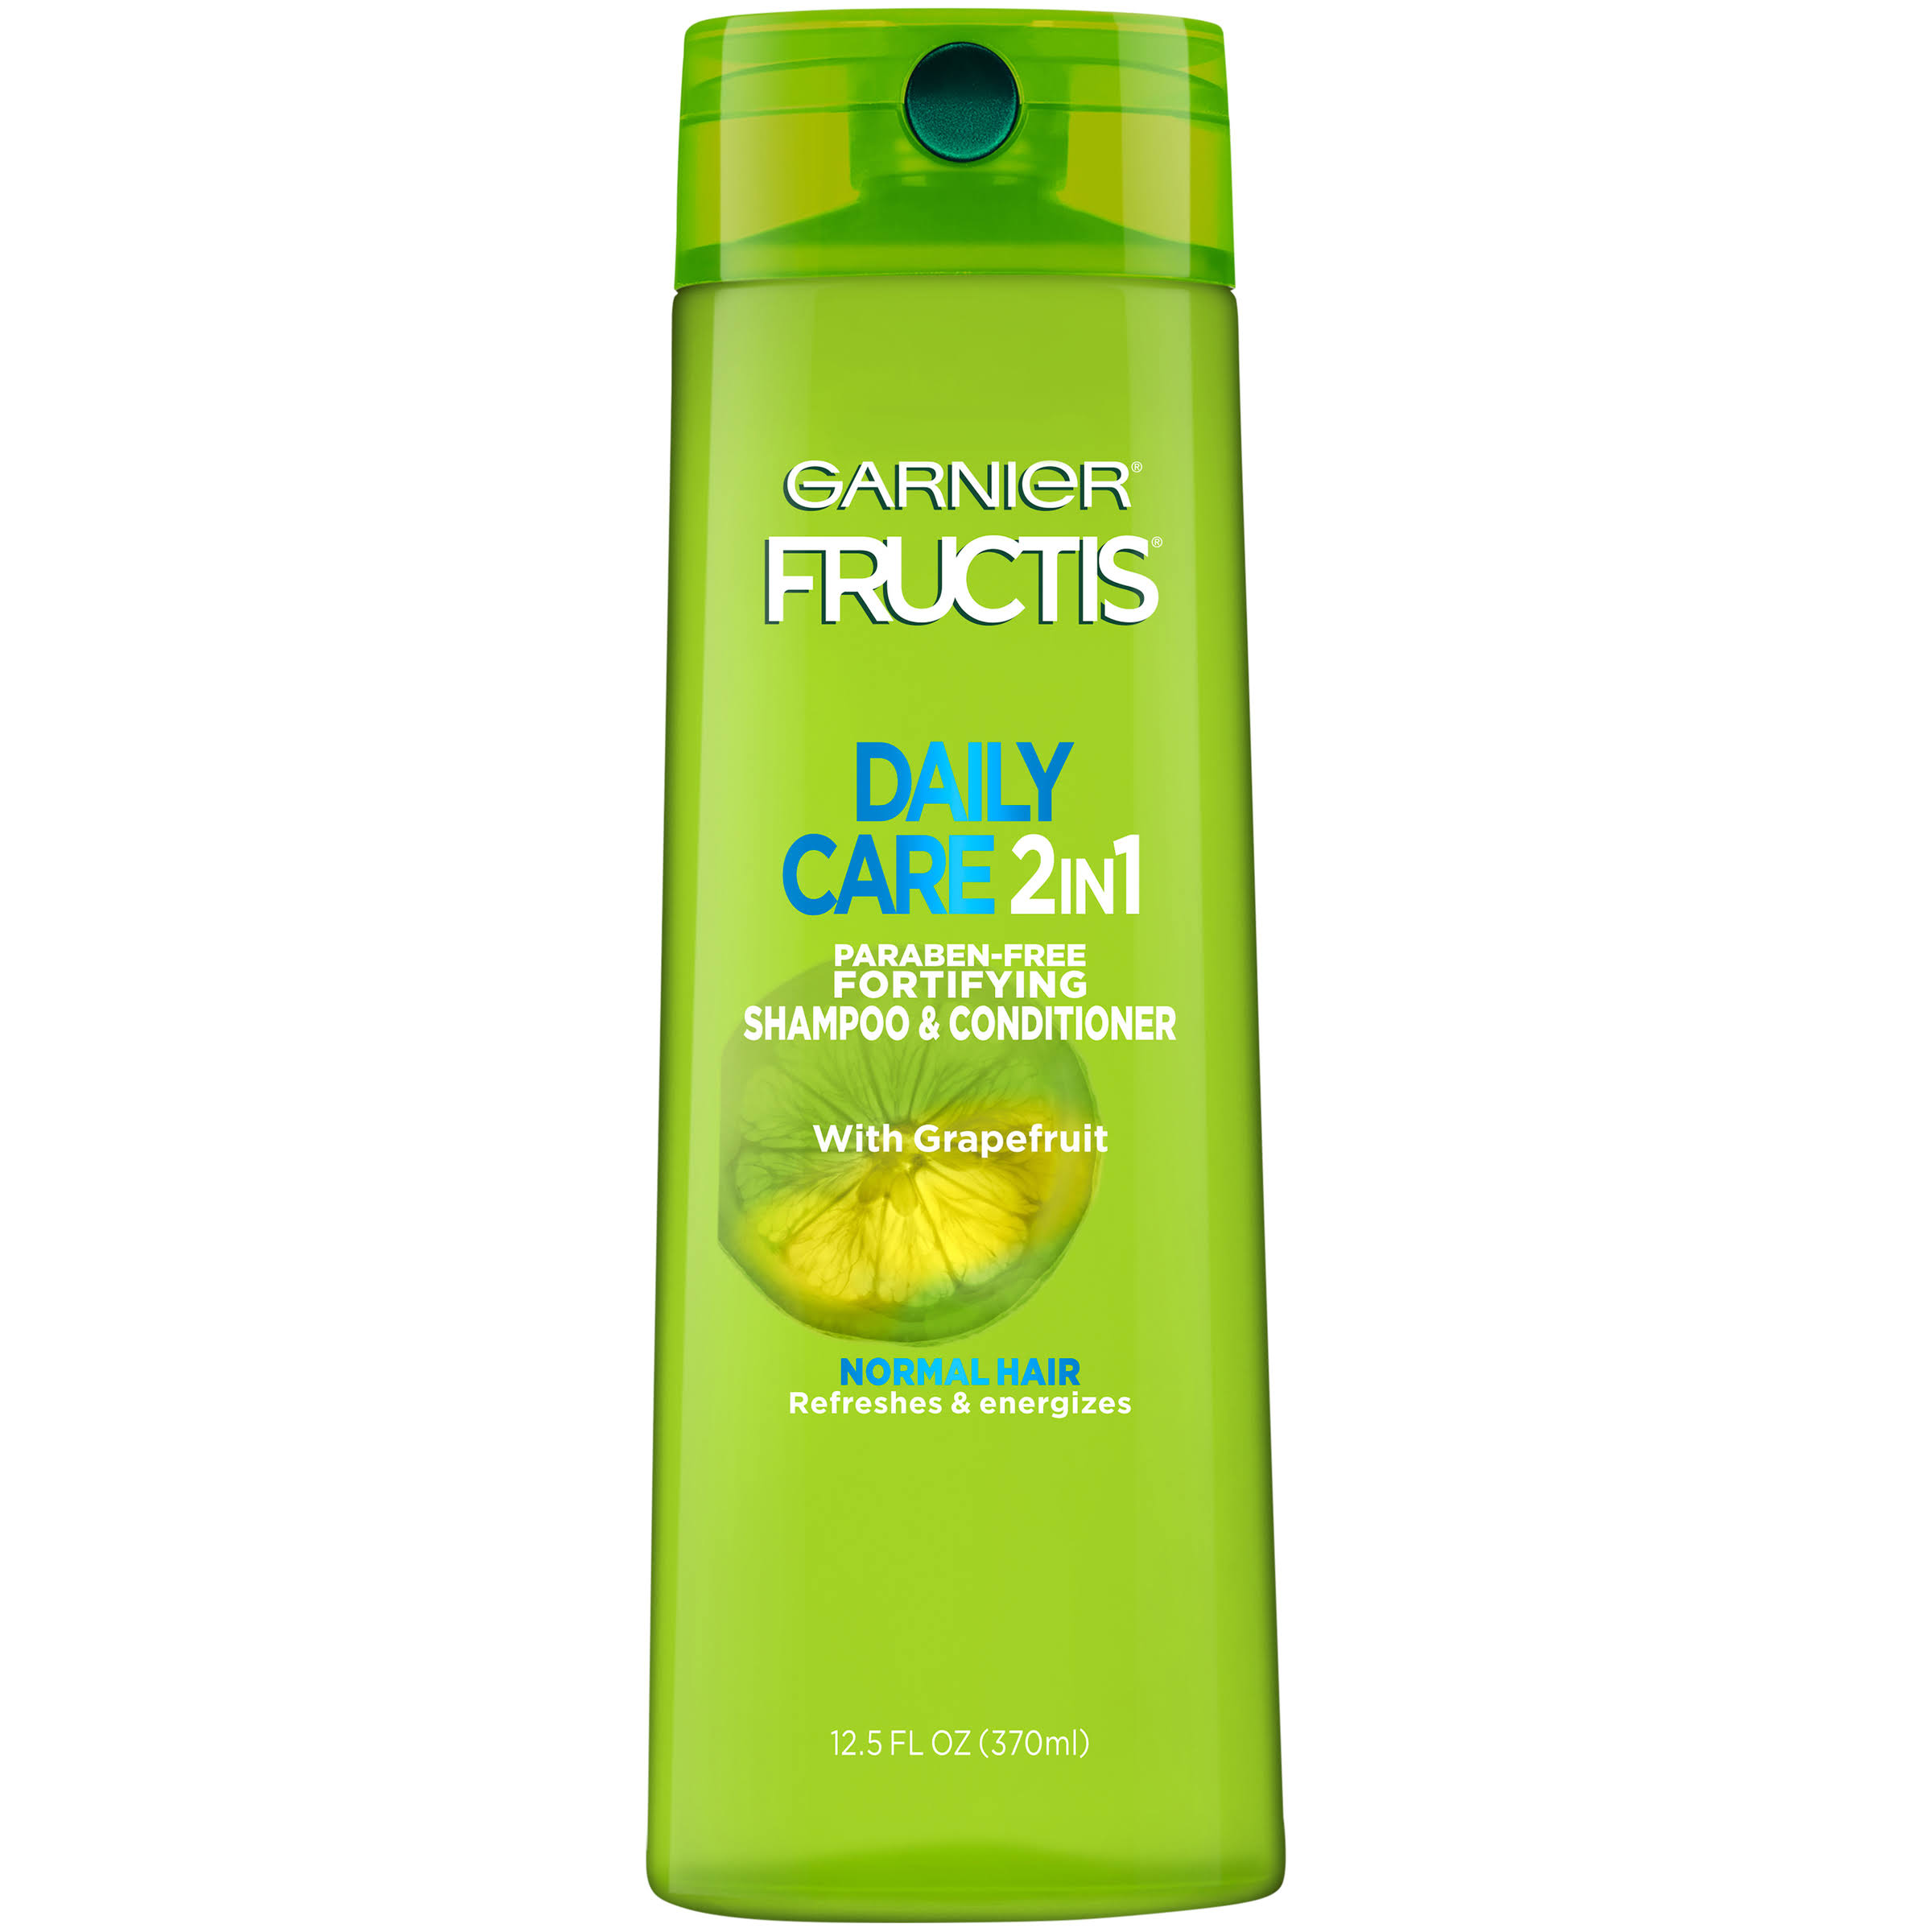 Garnier Hair Care Fructis Daily Care 2 in 1 Shampoo and Conditioner - 12.5oz